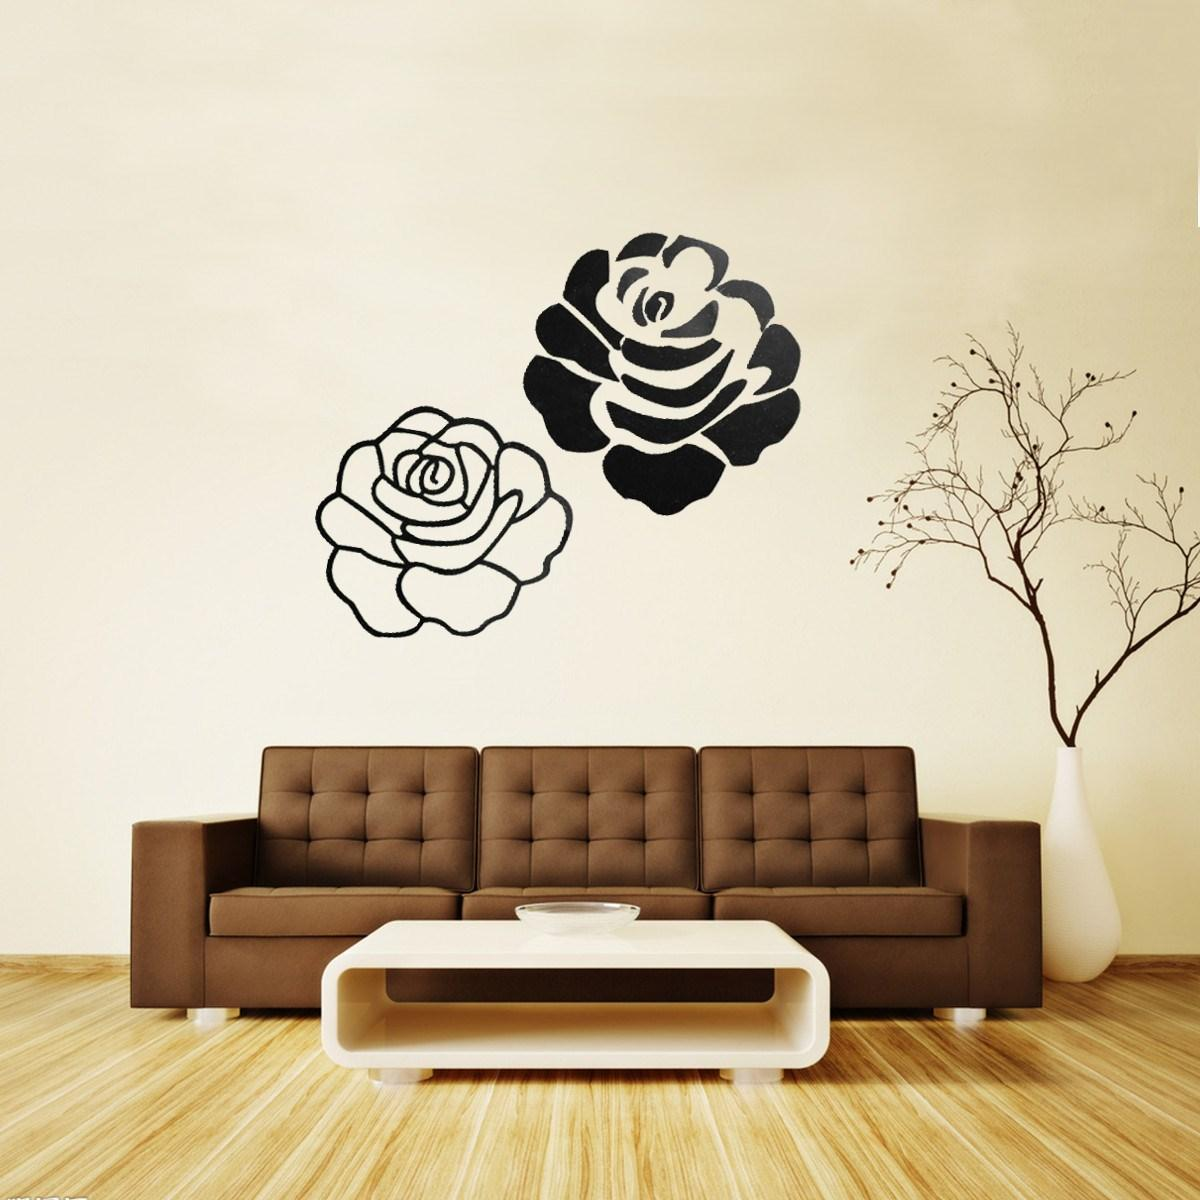 Rose wall stickers gallery home wall decoration ideas best promotion rose wall sticker decal gold and sliver wall best promotion rose wall sticker decal amipublicfo Gallery